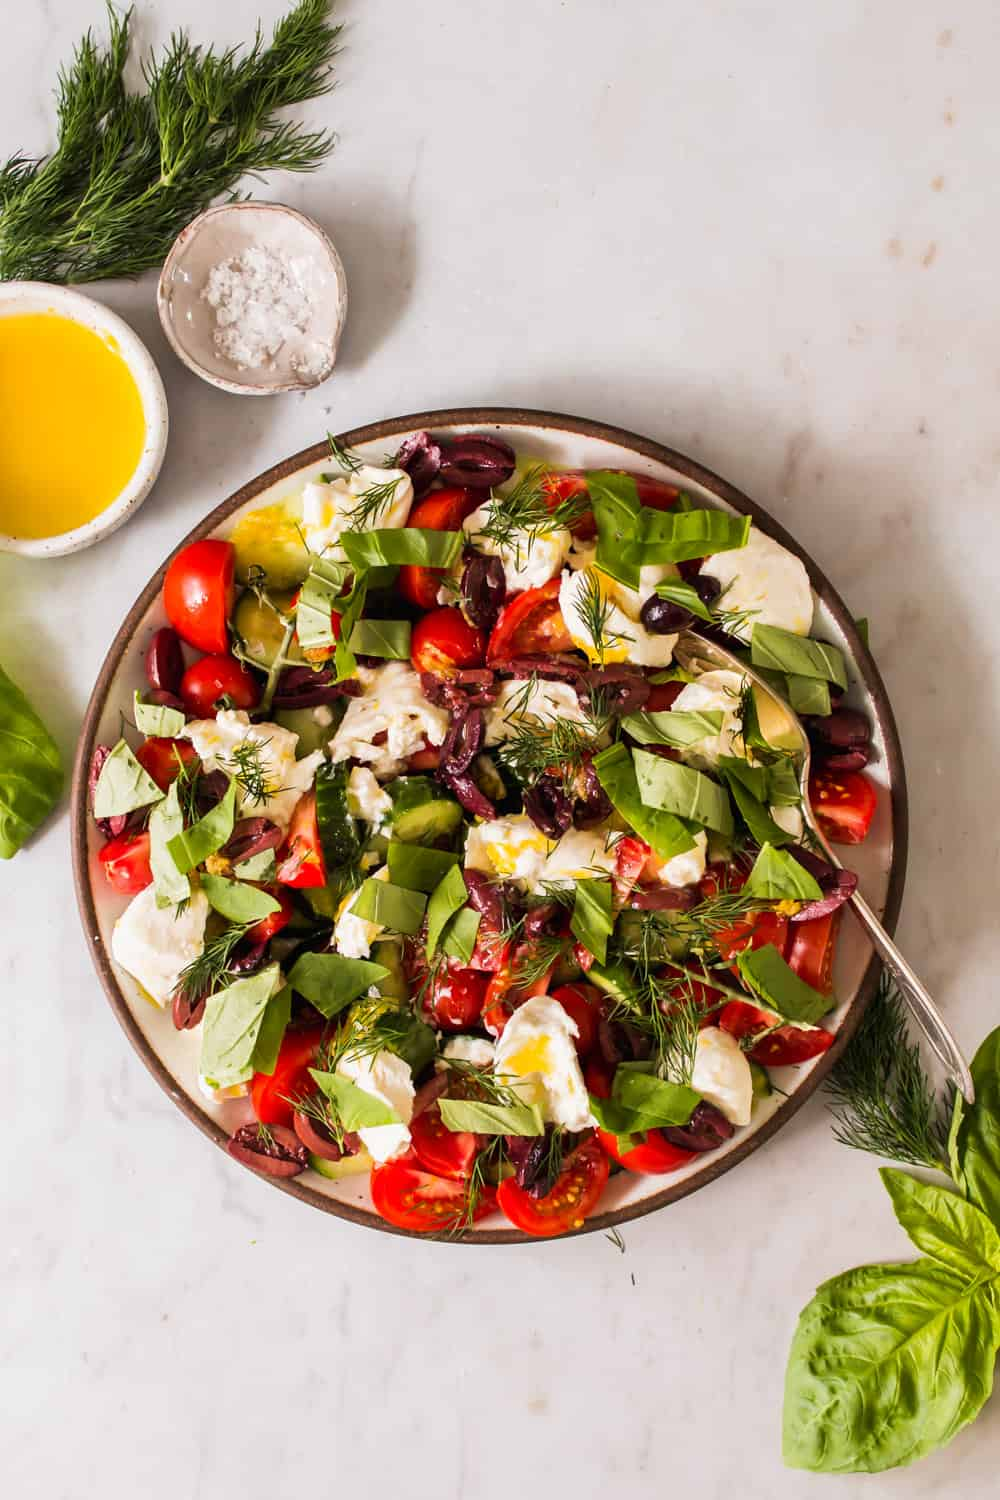 tomato, cheese, and cucumber salad in a large white bowl